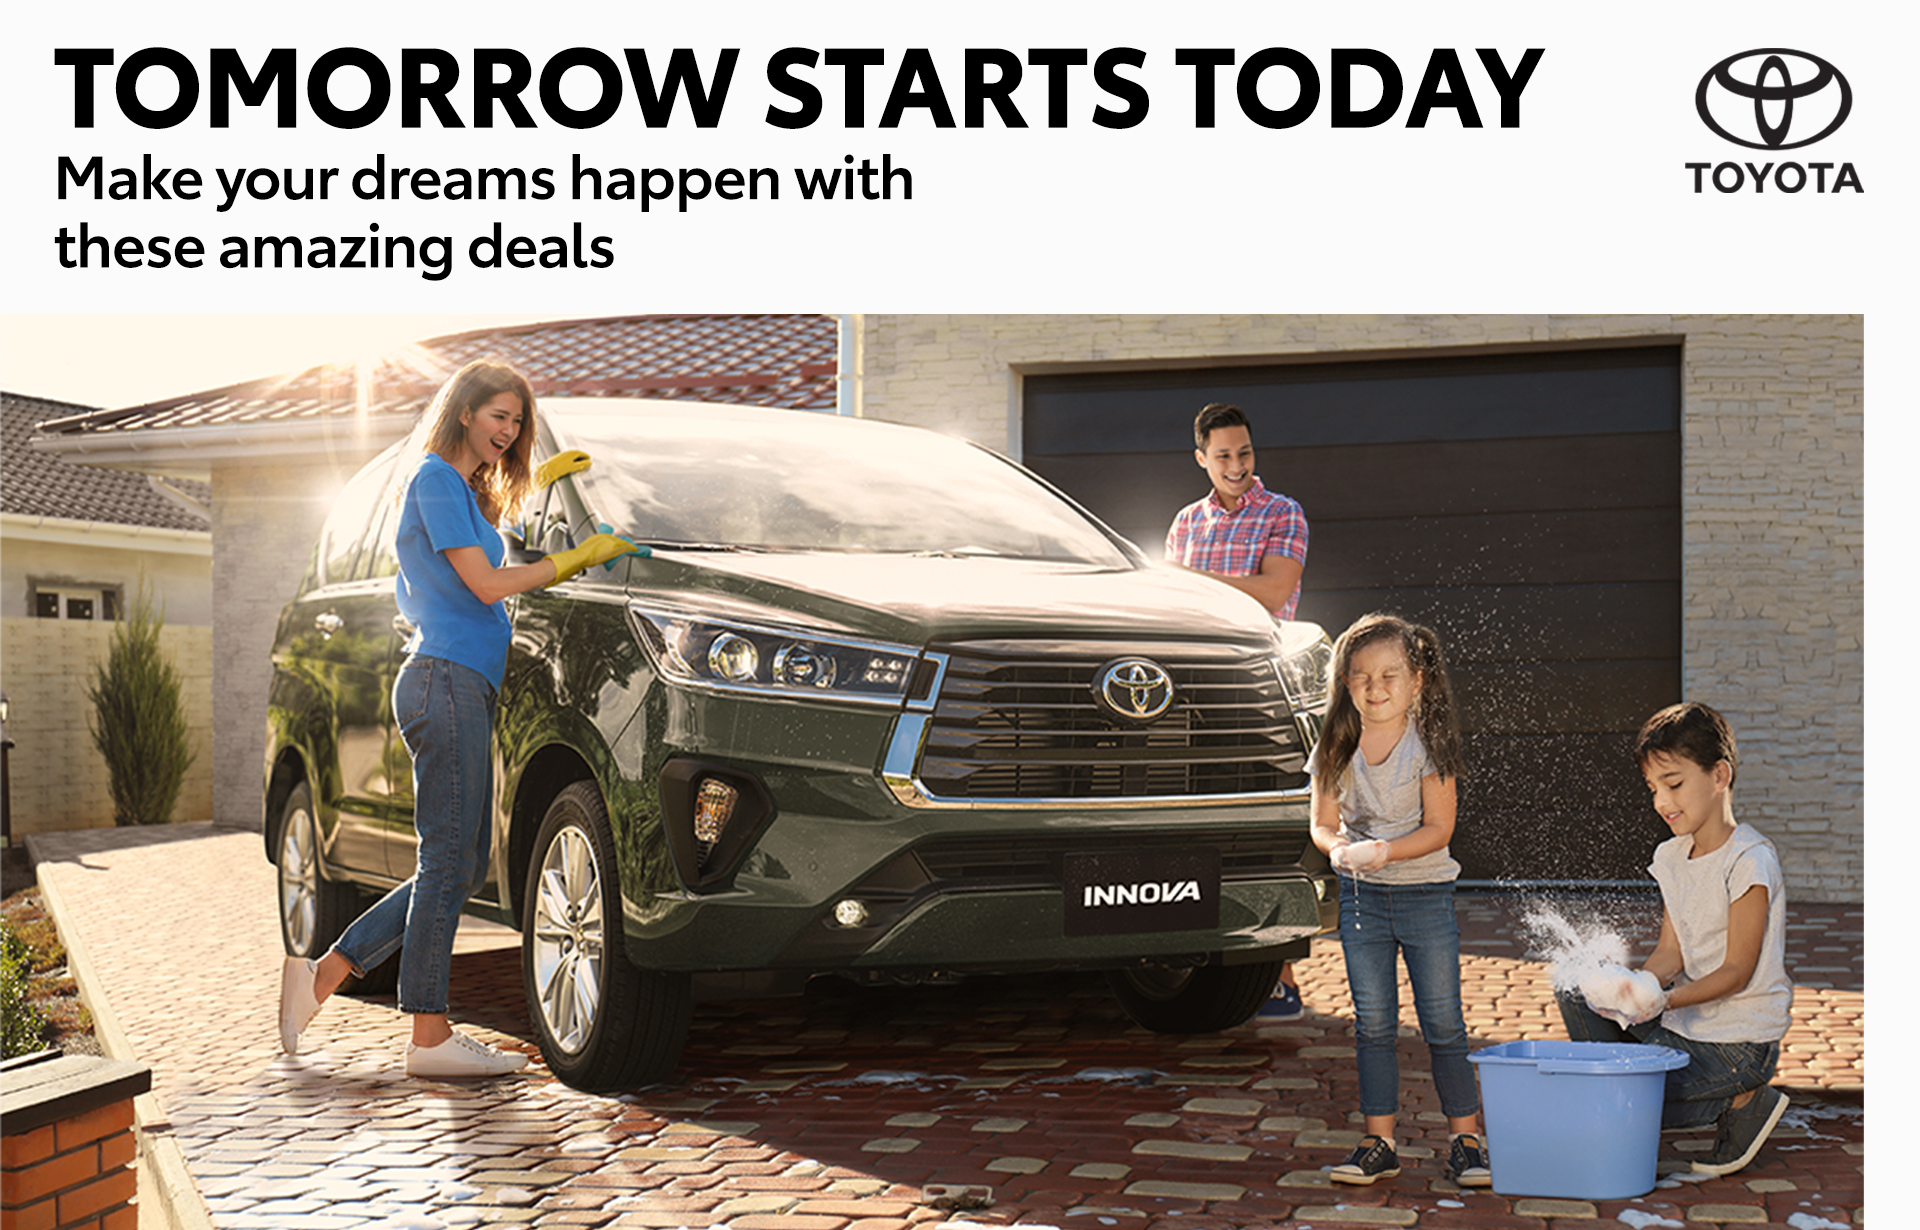 Tomorrow Starts Today with Toyota